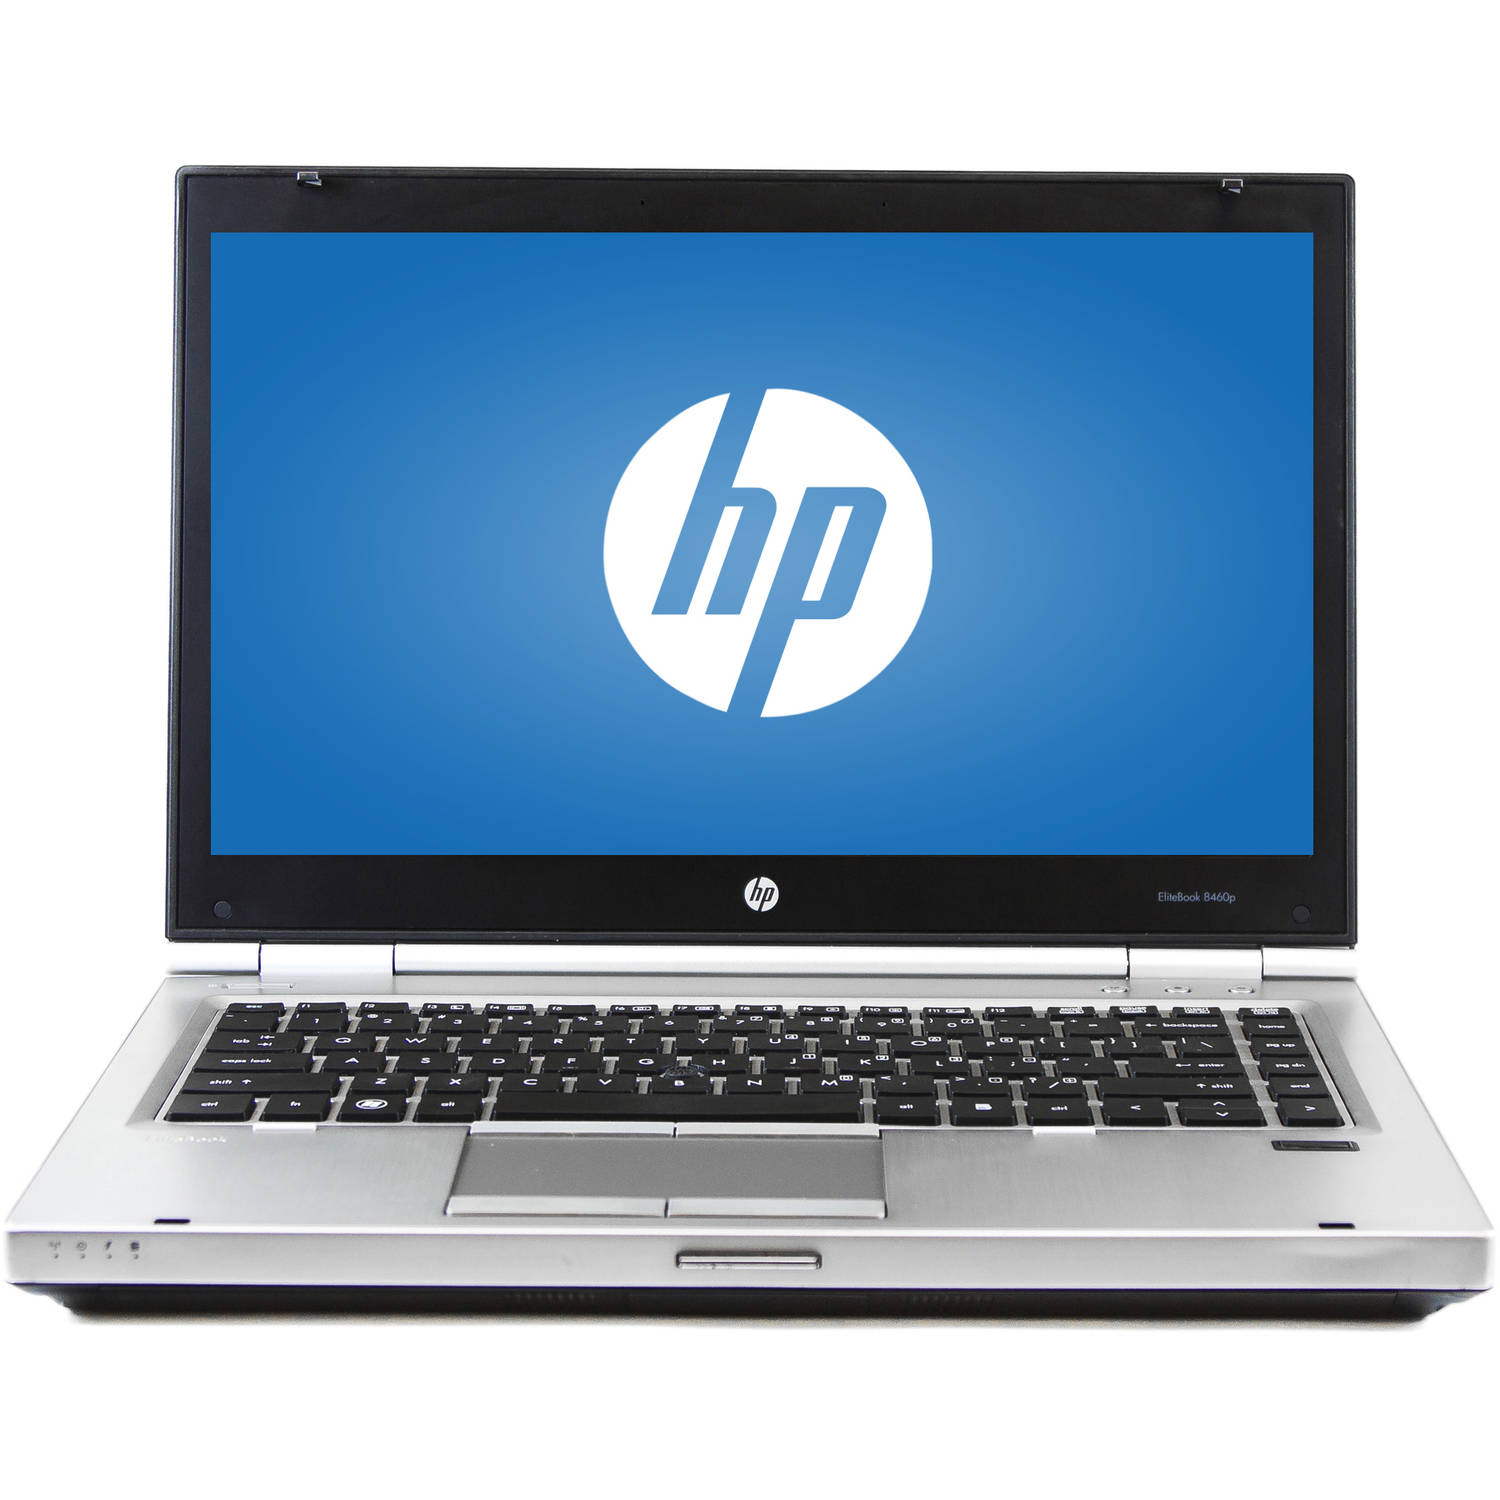 "Refurbished HP Silver 14"" Elitebook 8460P Laptop PC with Intel Core i5-2520M Processor, 8GB Memory, 240GB SSD and Windows 7 Professional"